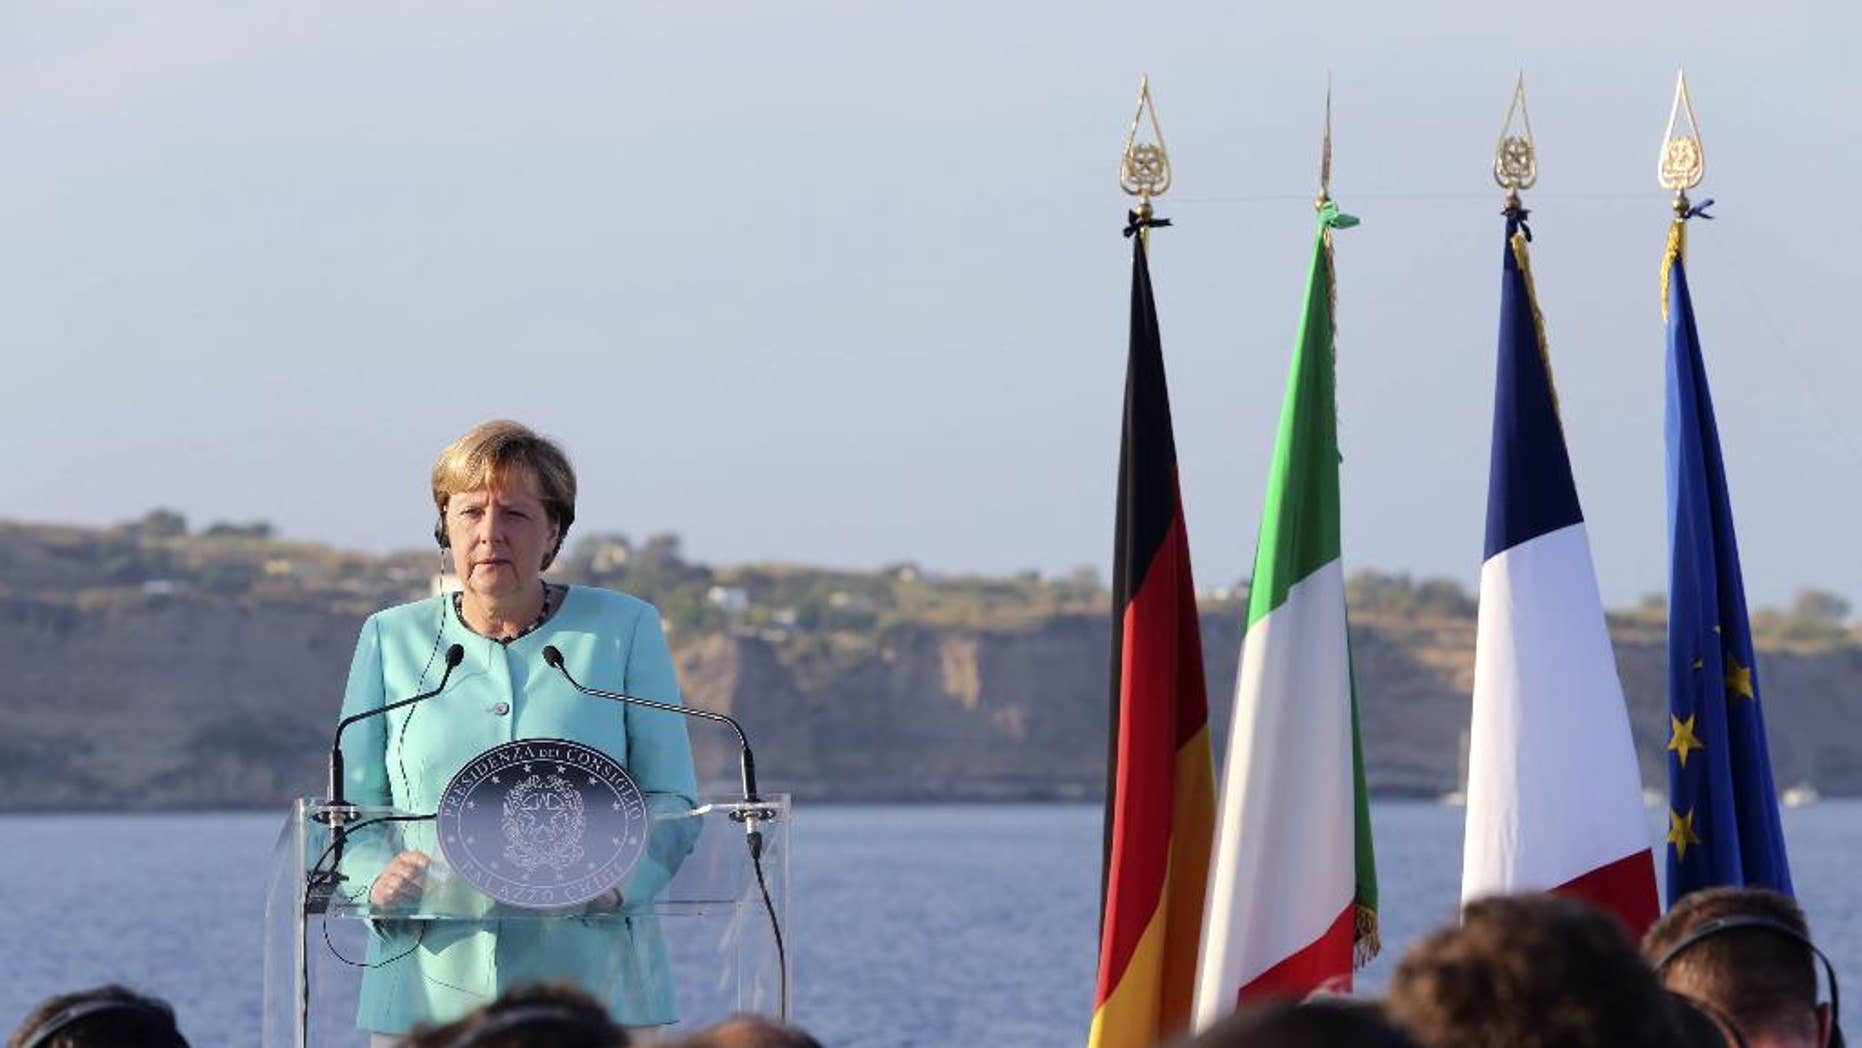 German Chancellor Angela Merkel speaks on the deck of the Italian aircraft carrier Garibaldi off Ventotene island's shores, Italy, Monday, Aug. 22, 2016. The leaders of Italy, France and Germany headed Monday to one of the birthplaces of European unity in a symbolic bid to relaunch the European project following Britain's decision to leave the EU. (AP Photo/Roberta Basile)